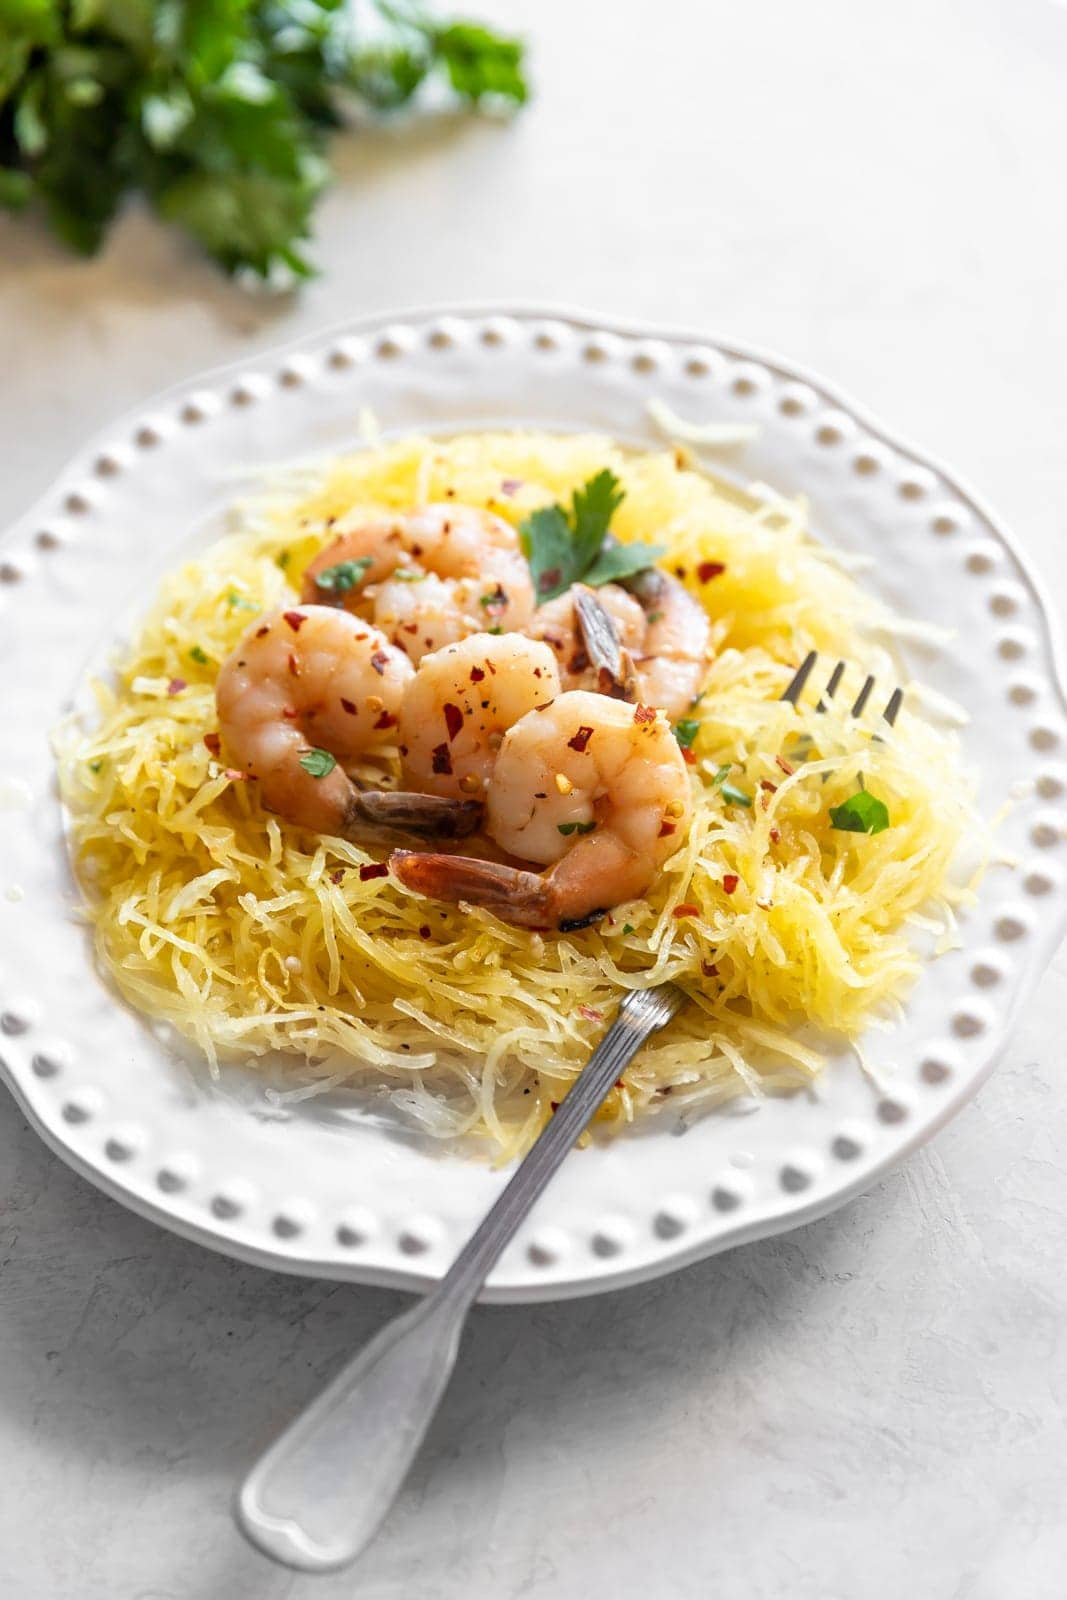 Sautéed shrimp tossed in a quick + easy garlic, red pepper flakes, parsley, white wine, and butter sauce served on top of spaghetti squash.